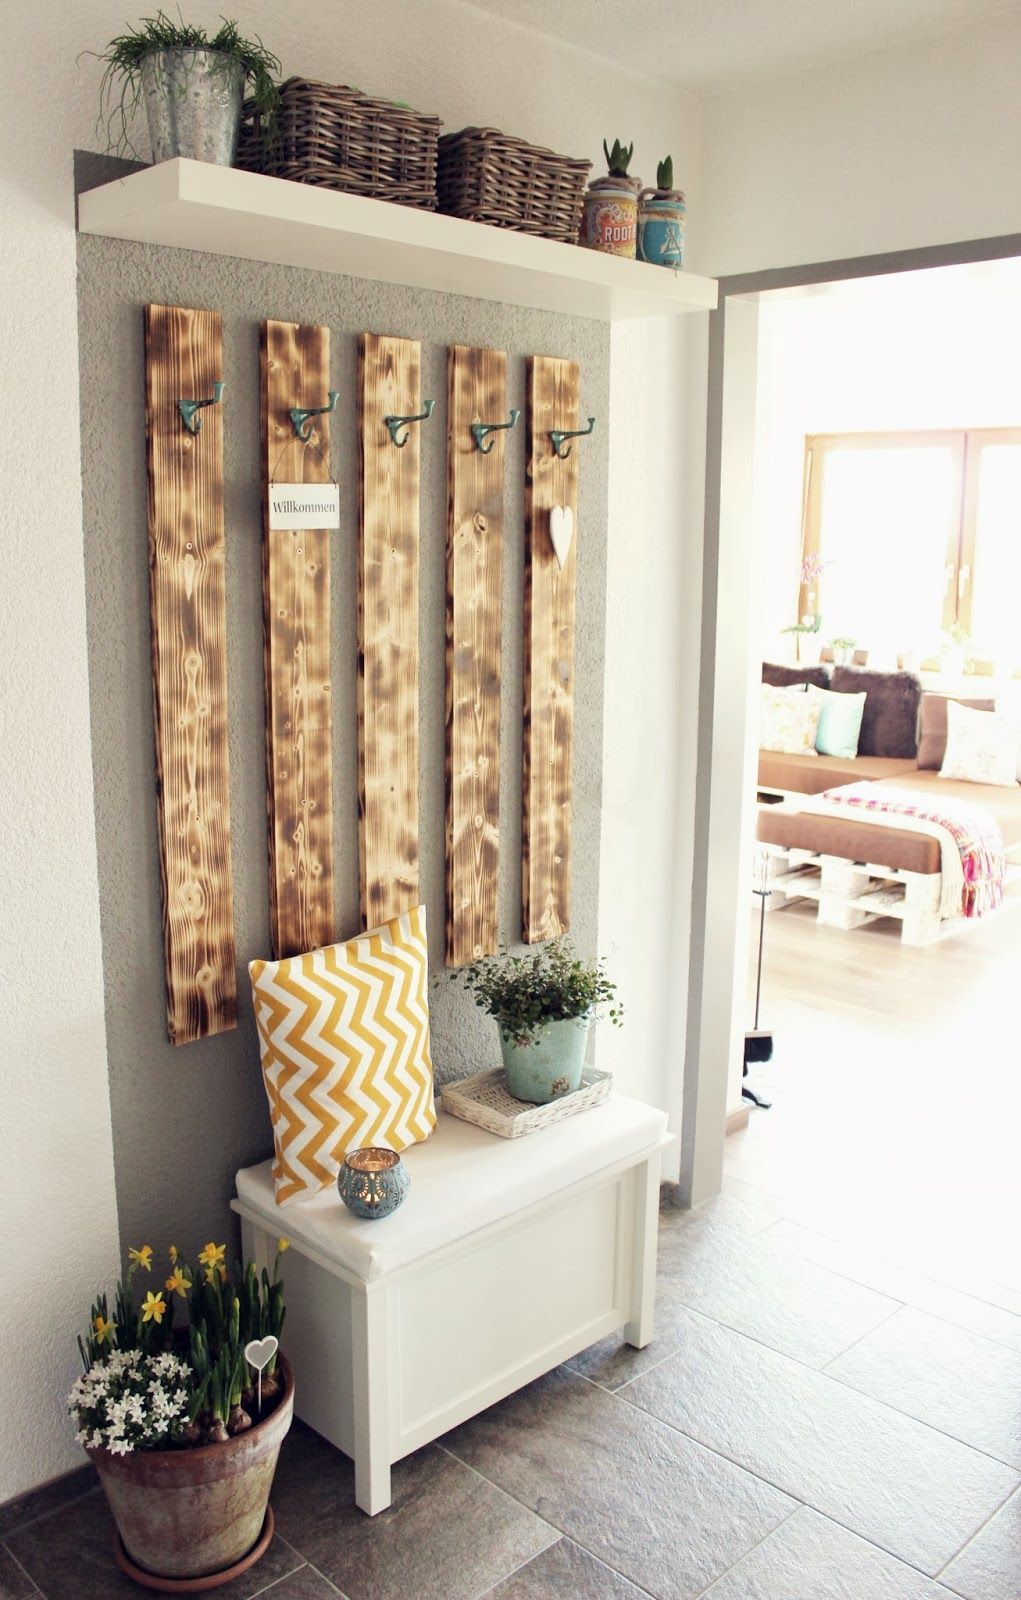 Flurgarderobe Aus Paletten Diy Garderobe S Bastelkistle Living Home Decor Home Und